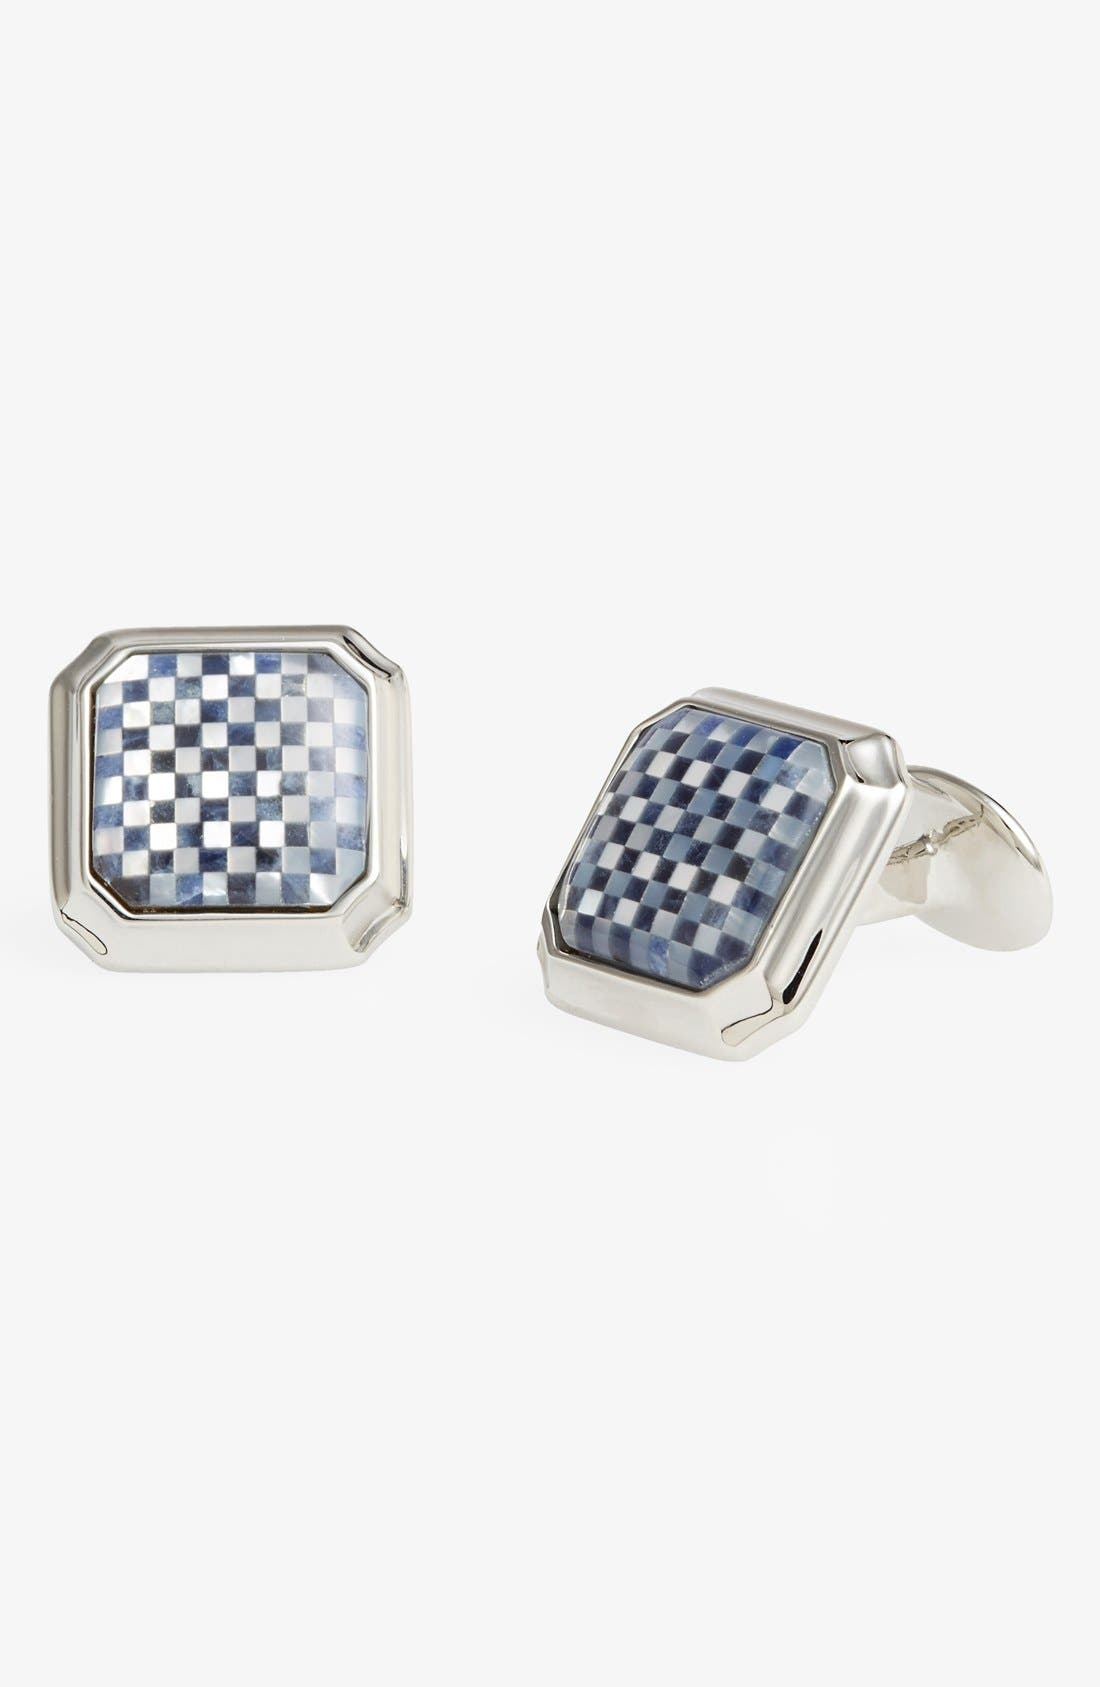 Mother of Pearl & Sodalite Cuff Links,                         Main,                         color, Silver/ Black